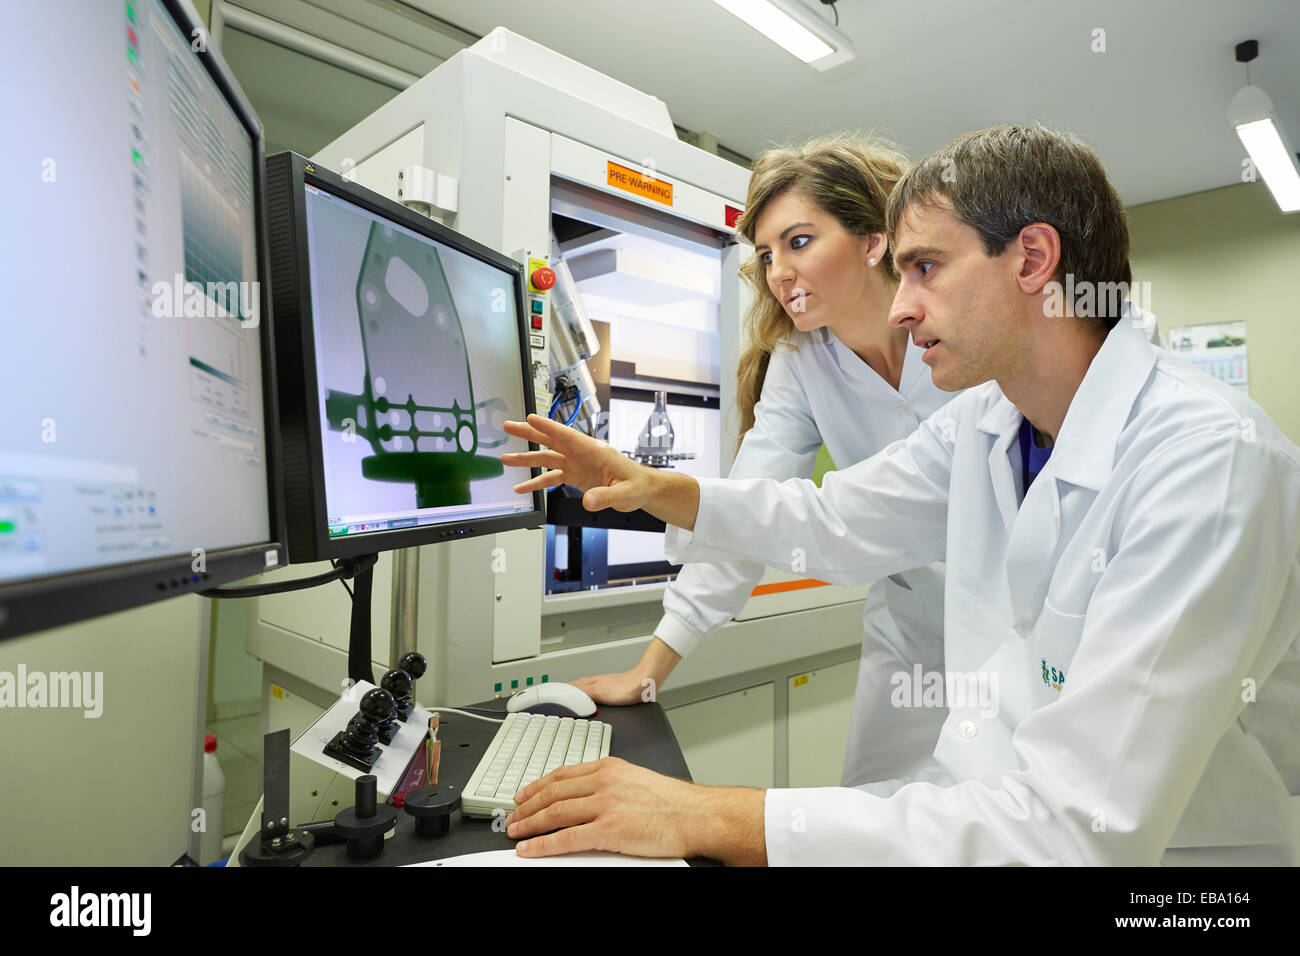 XTH 225. Computed tomography system. Industrial X-ray. Technicians inspect the internal structure and porosity of - Stock Image